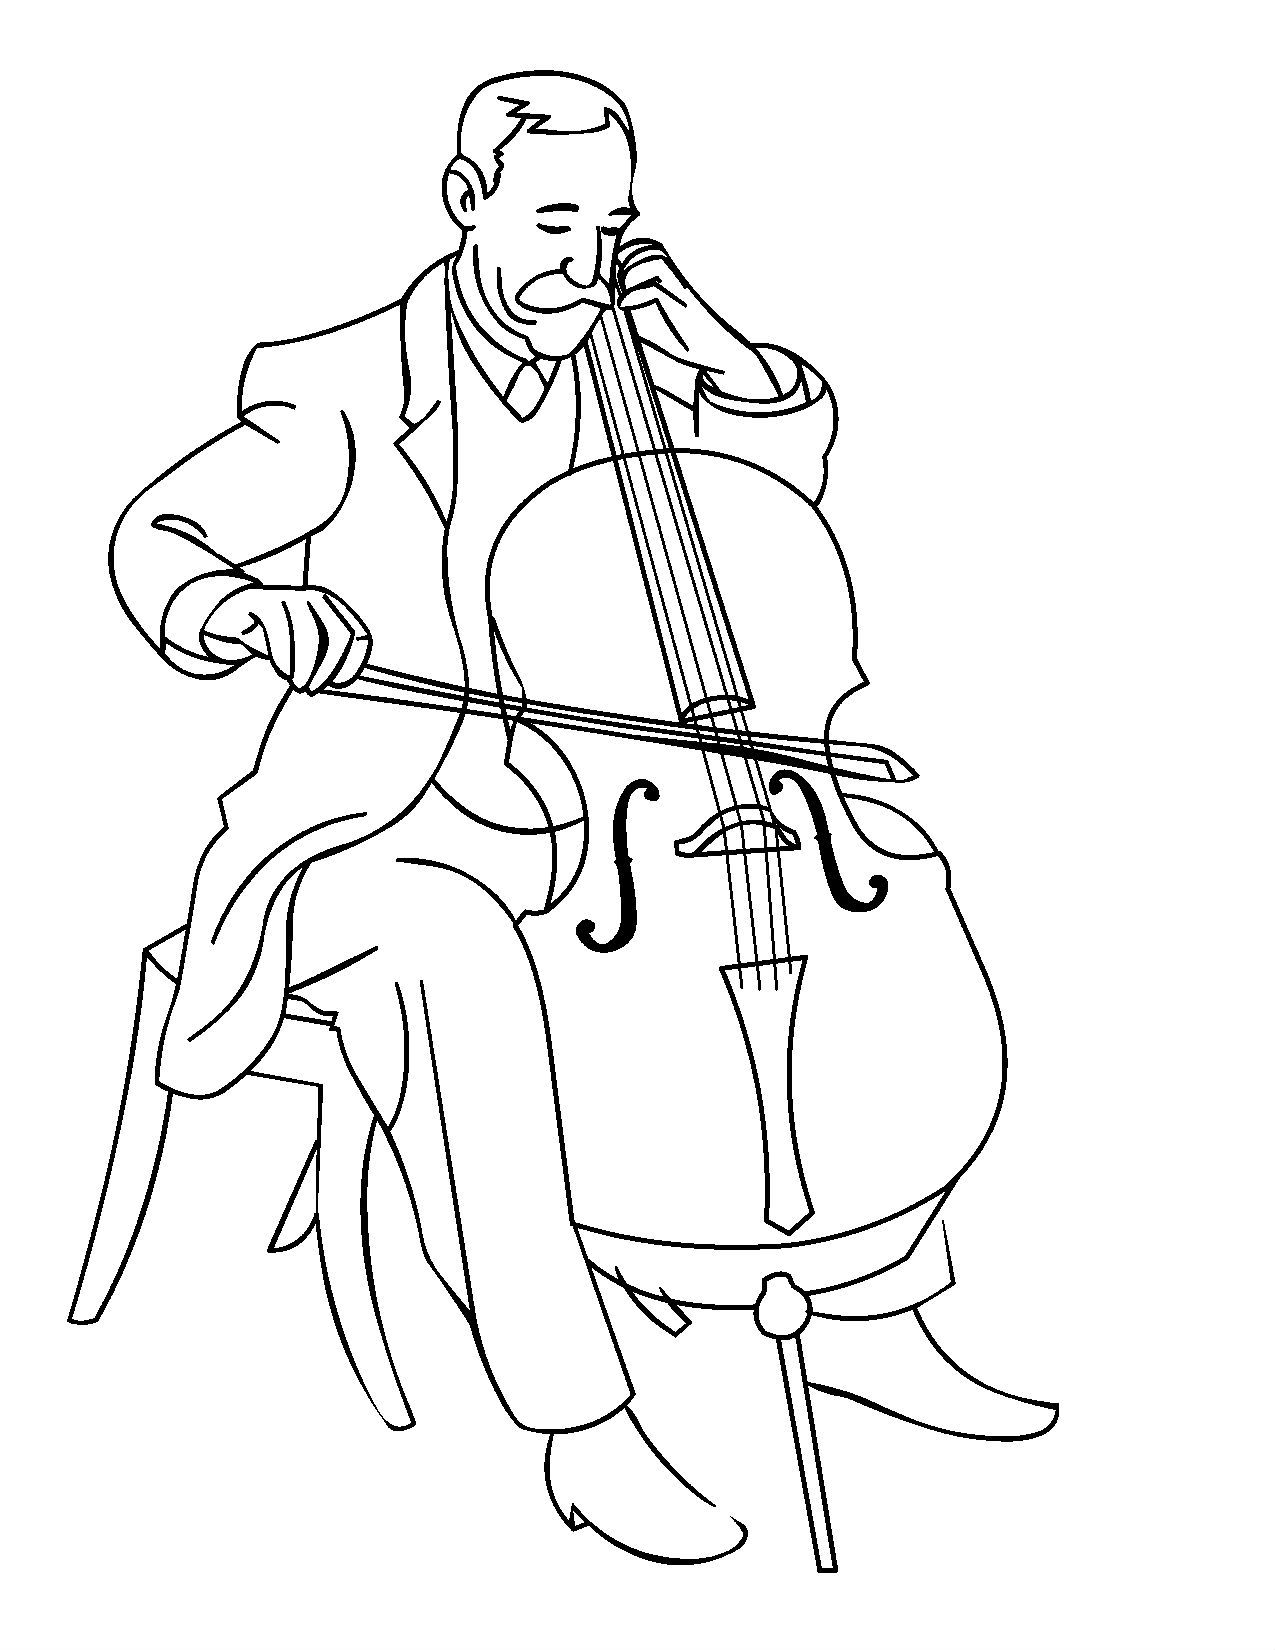 Music Cello | Music | Pinterest